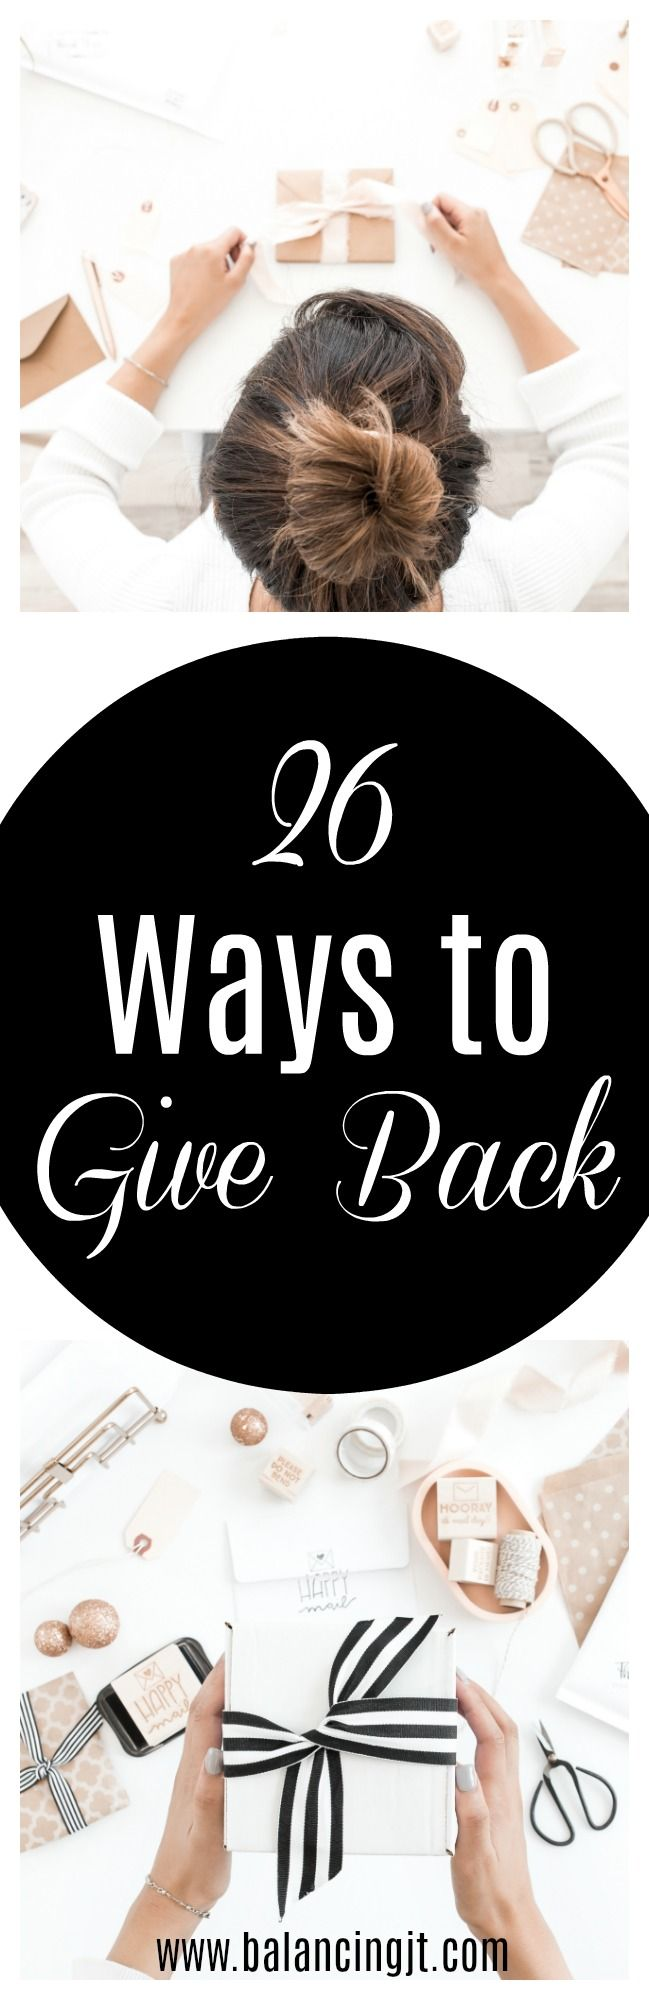 Ways to Give Back - ideas include organizations to donate to, volunteer opportunities, charity ideas, fundraiser ideas.